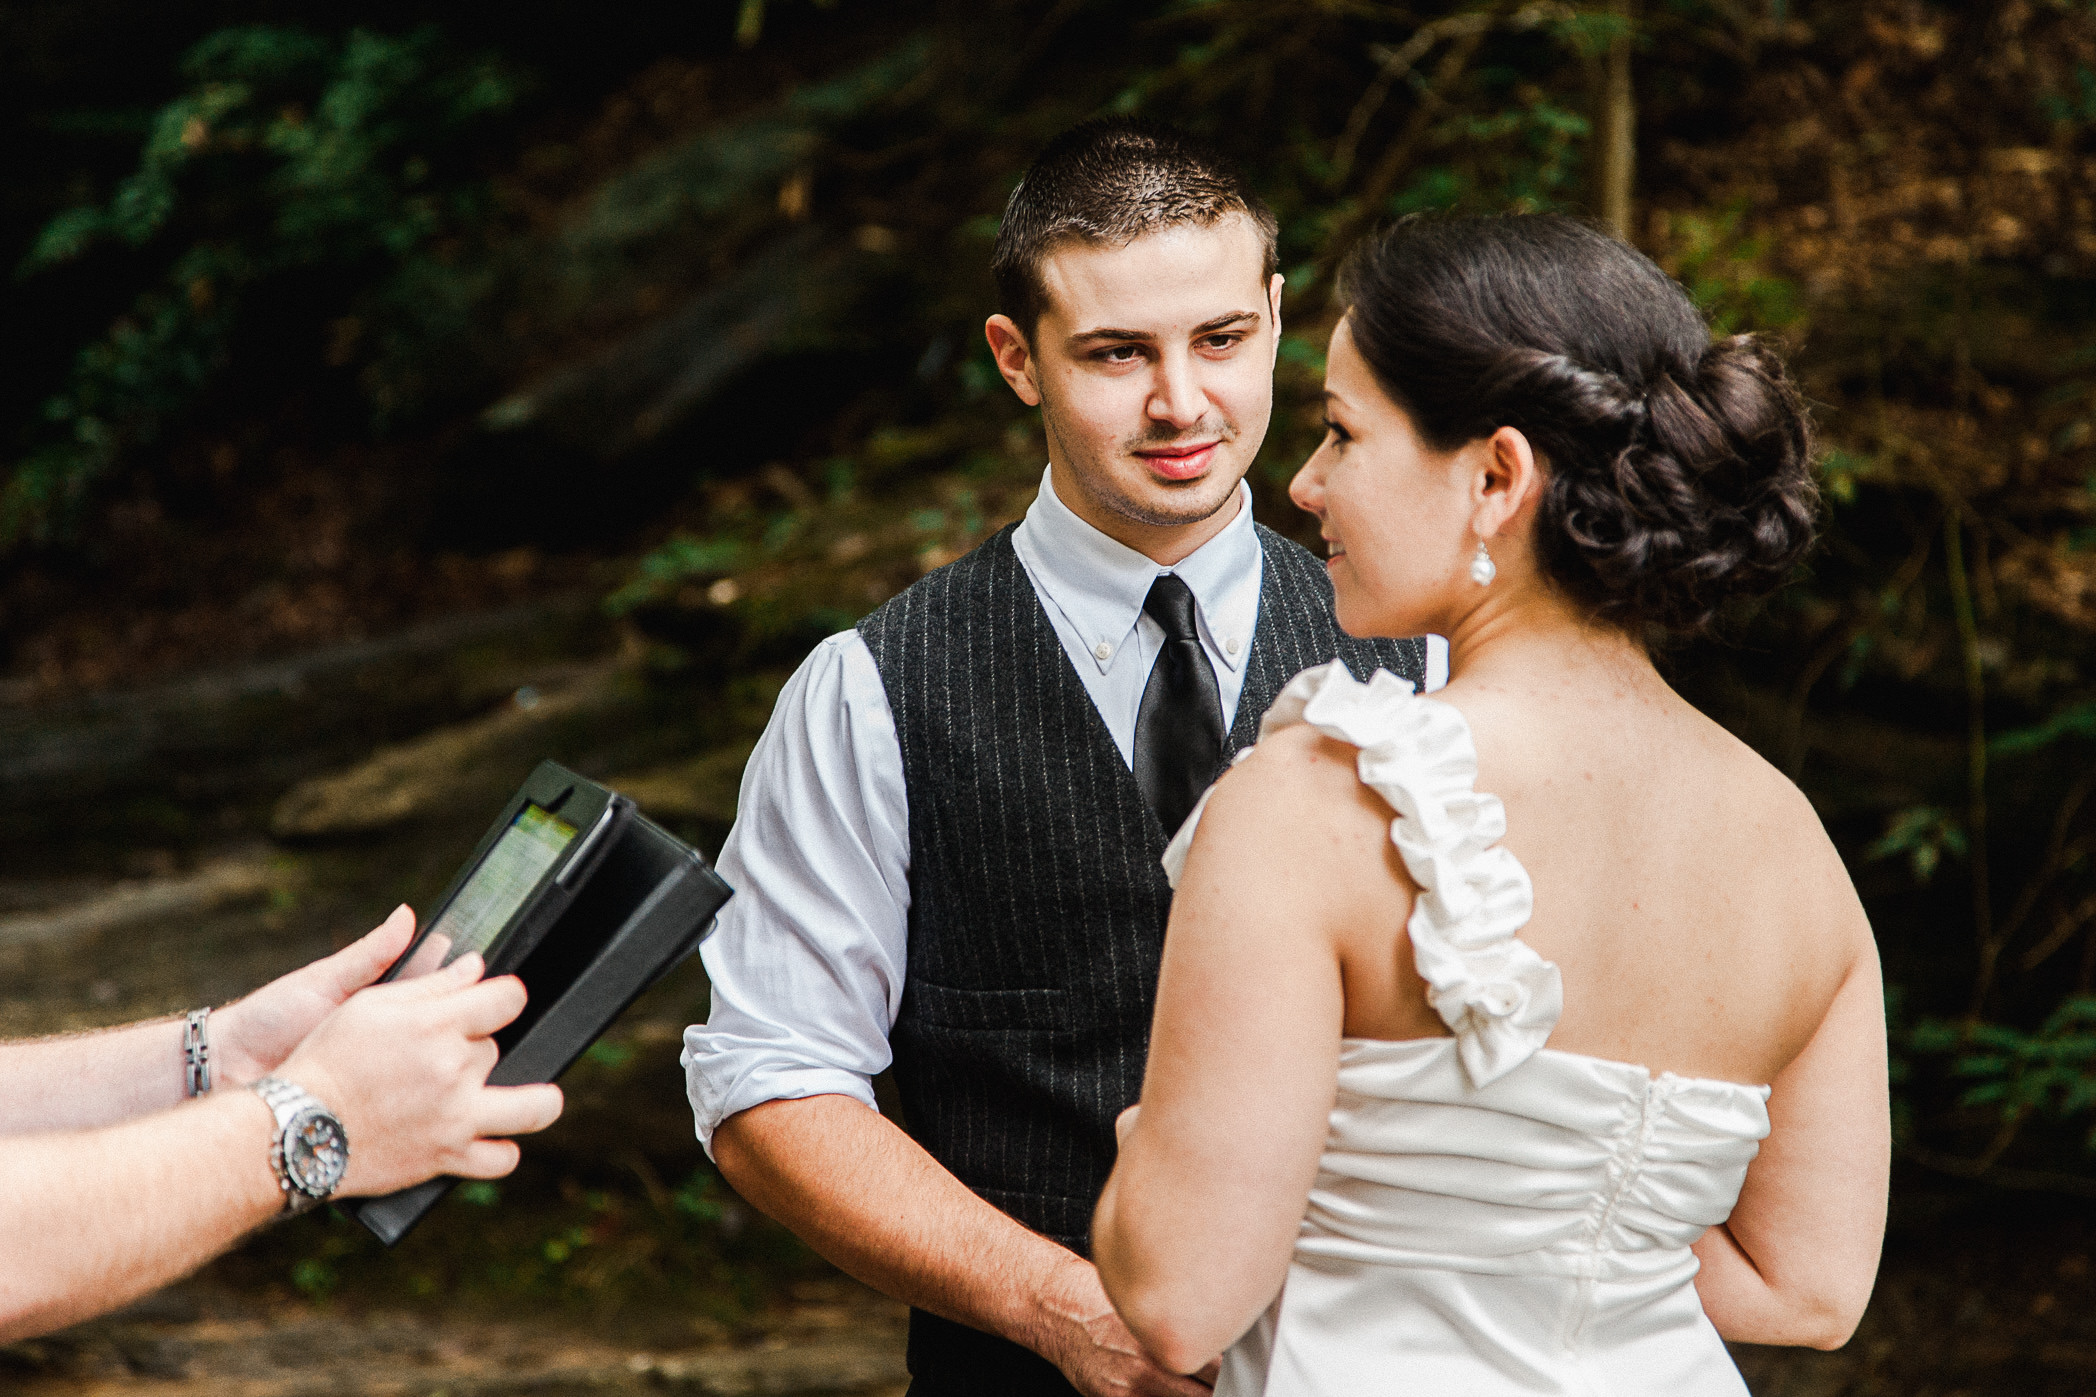 wildcat_falls_wedding (7 of 36).jpg